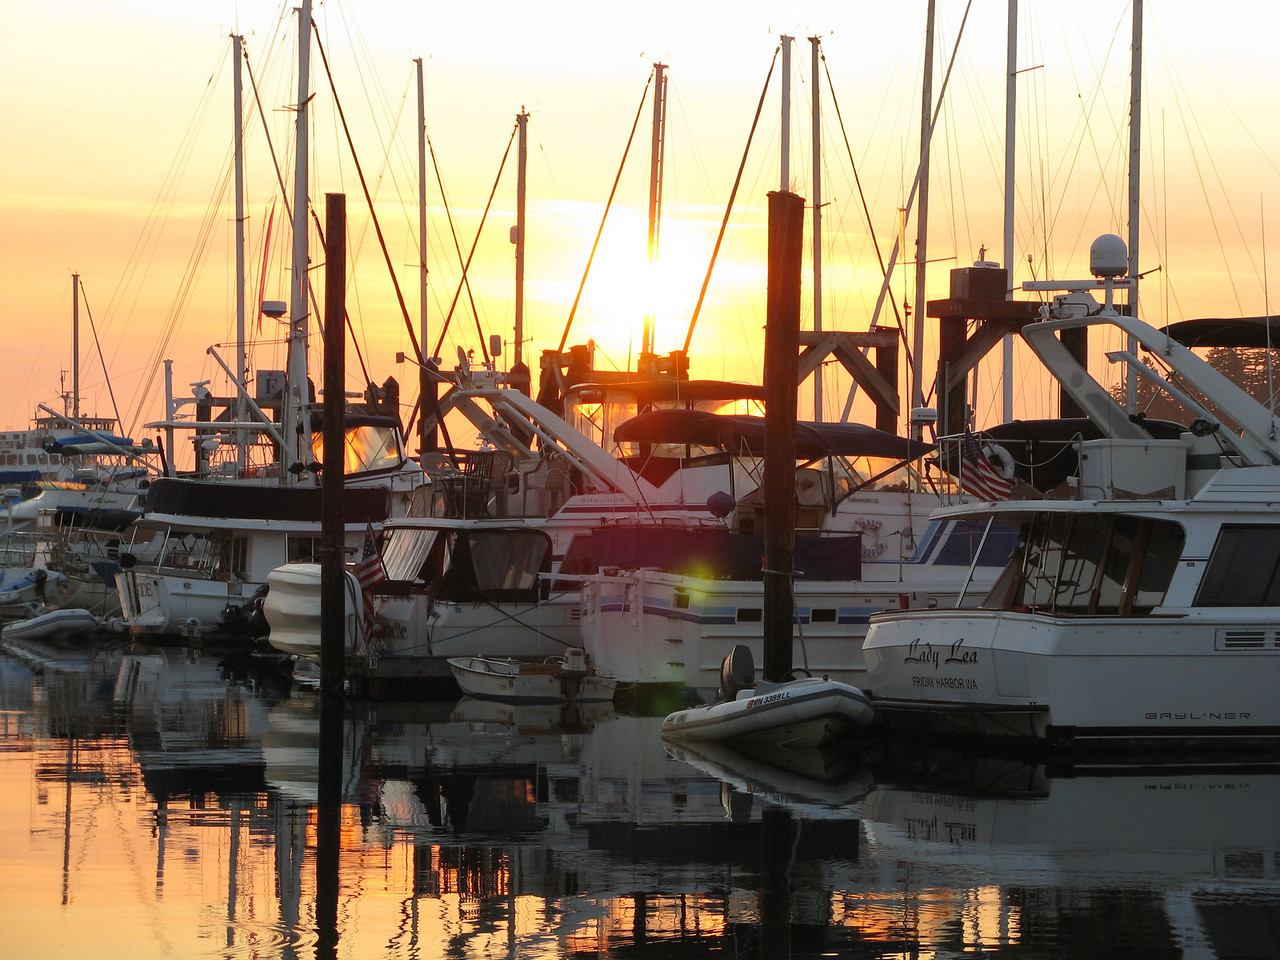 On Tuesday morning, sunrise is brilliant over the boats at Friday Harbor.